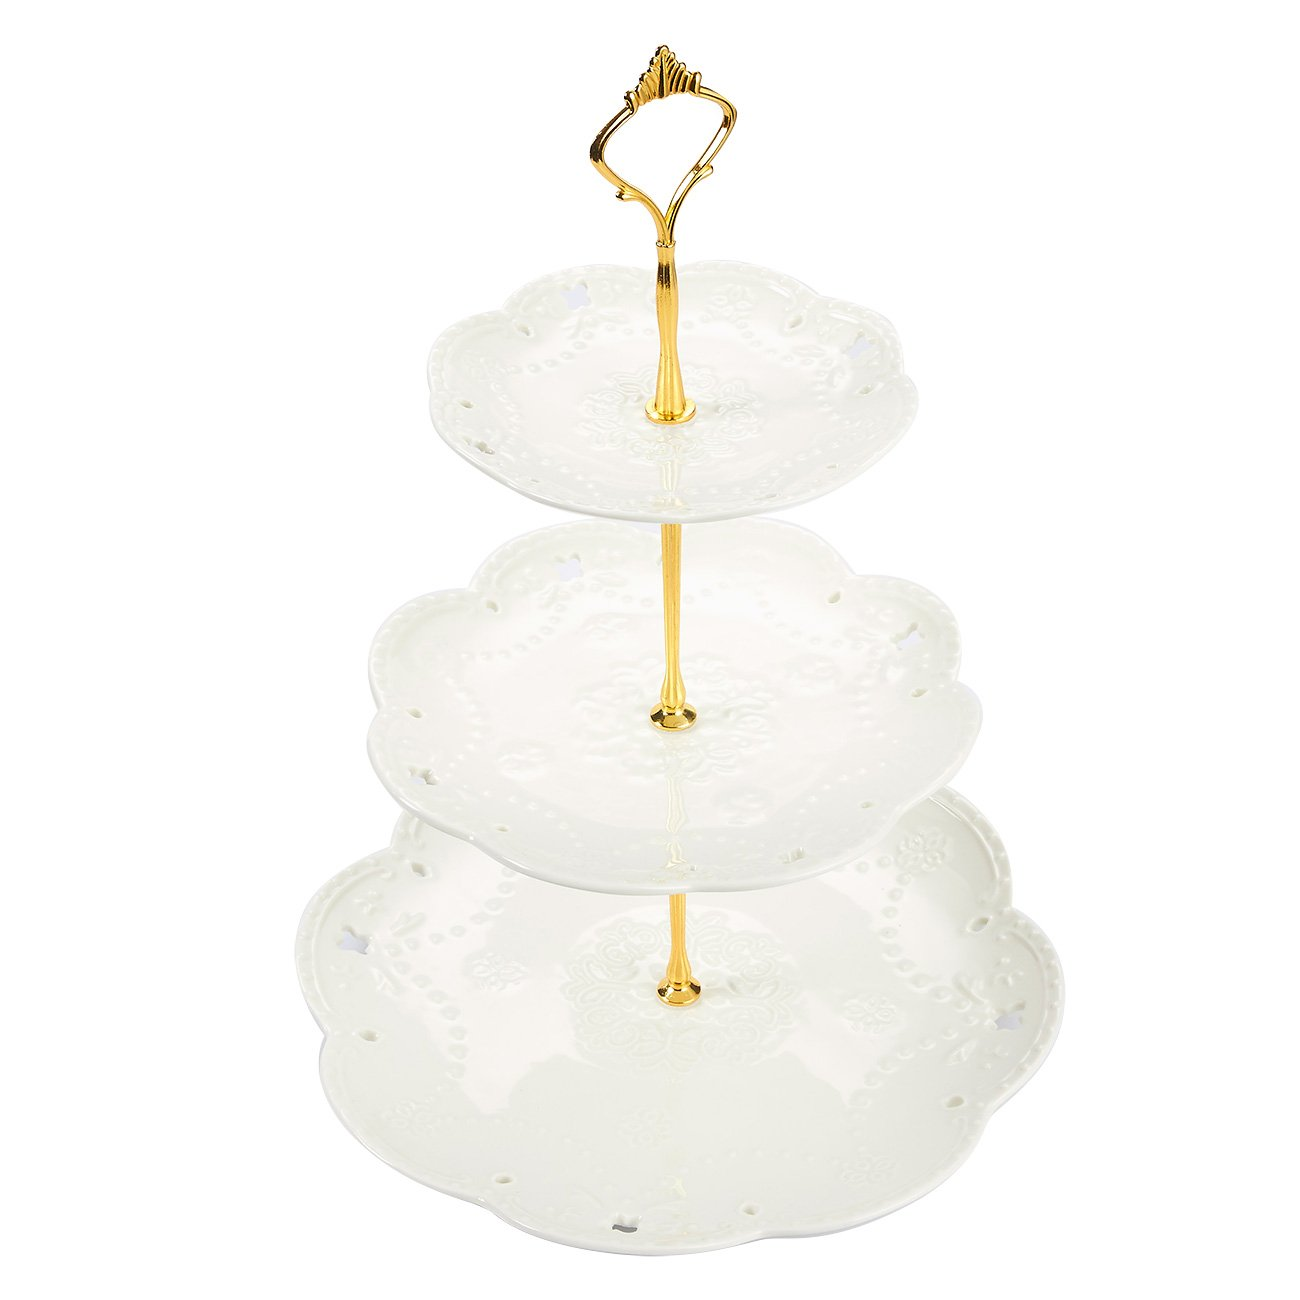 Fruit Juvale 3-Tier Ceramic Dessert Stand White Perfect for Holding Cupcakes Baby Shower Parties Great for Weddings Bridal Showers Birthdays Cakes